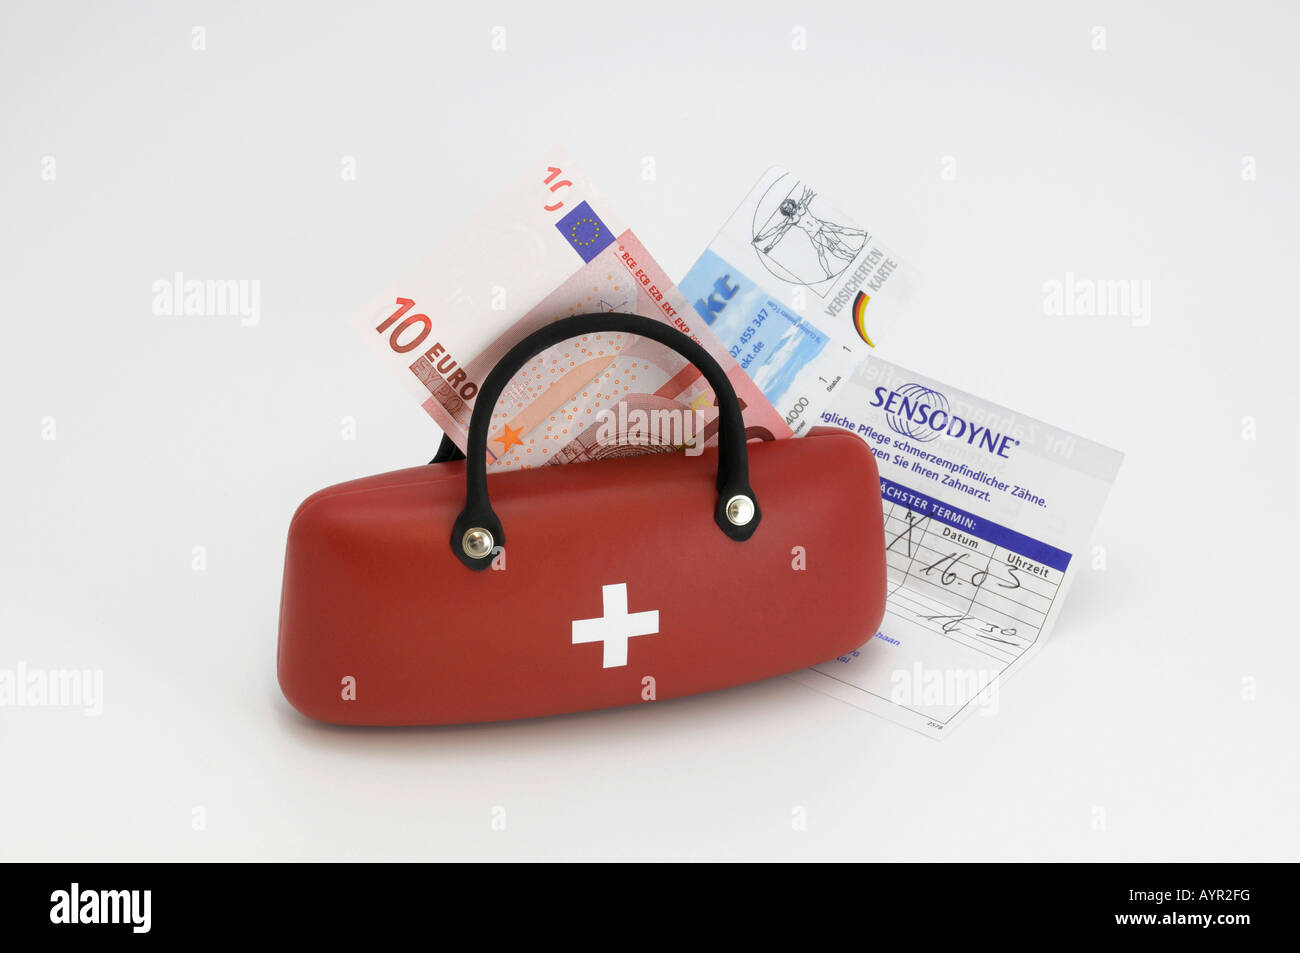 Medical bag, health insurance card, 10-Euro note, symbol for doctor's fees - Stock Image